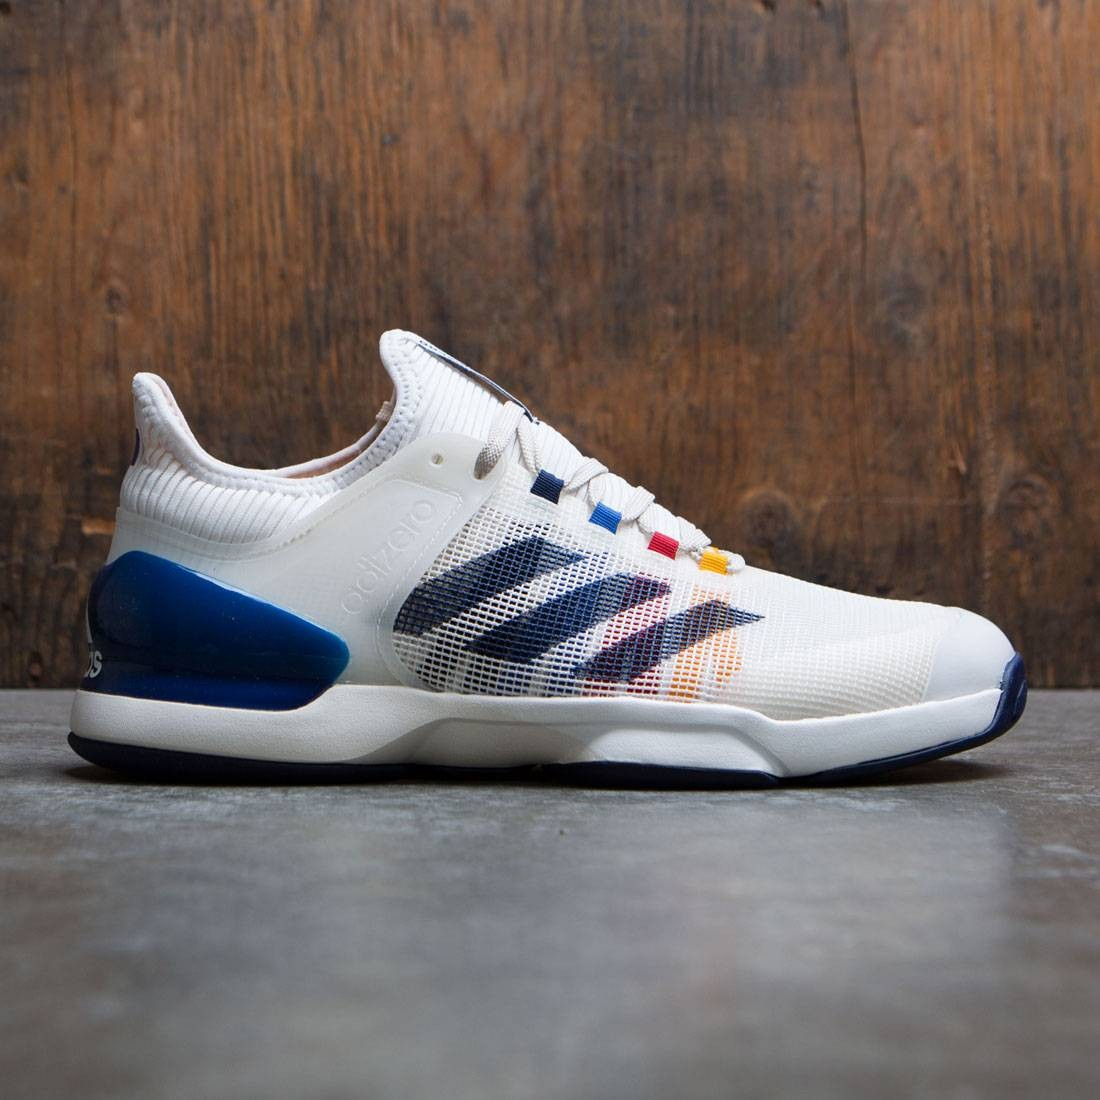 f09bb5bdb Adidas x Pharrell Williams Men Adizero Ubersonic 2 white chalk white dark  blue scarlet